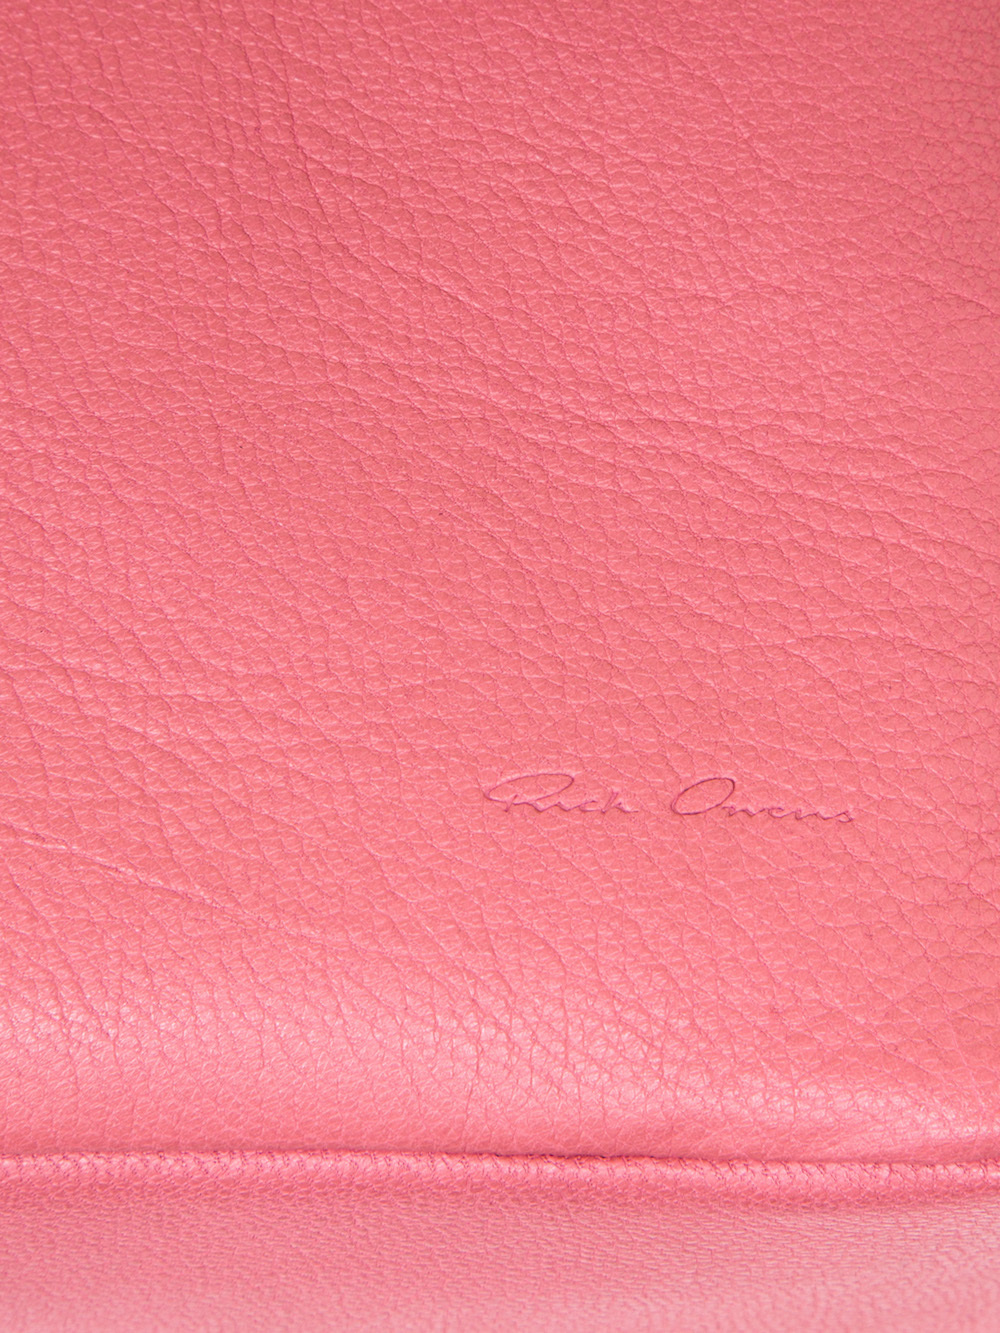 RICK OWENS BIG TOILETRY BEAUTY CASE IN PINK GOAT LEATHER